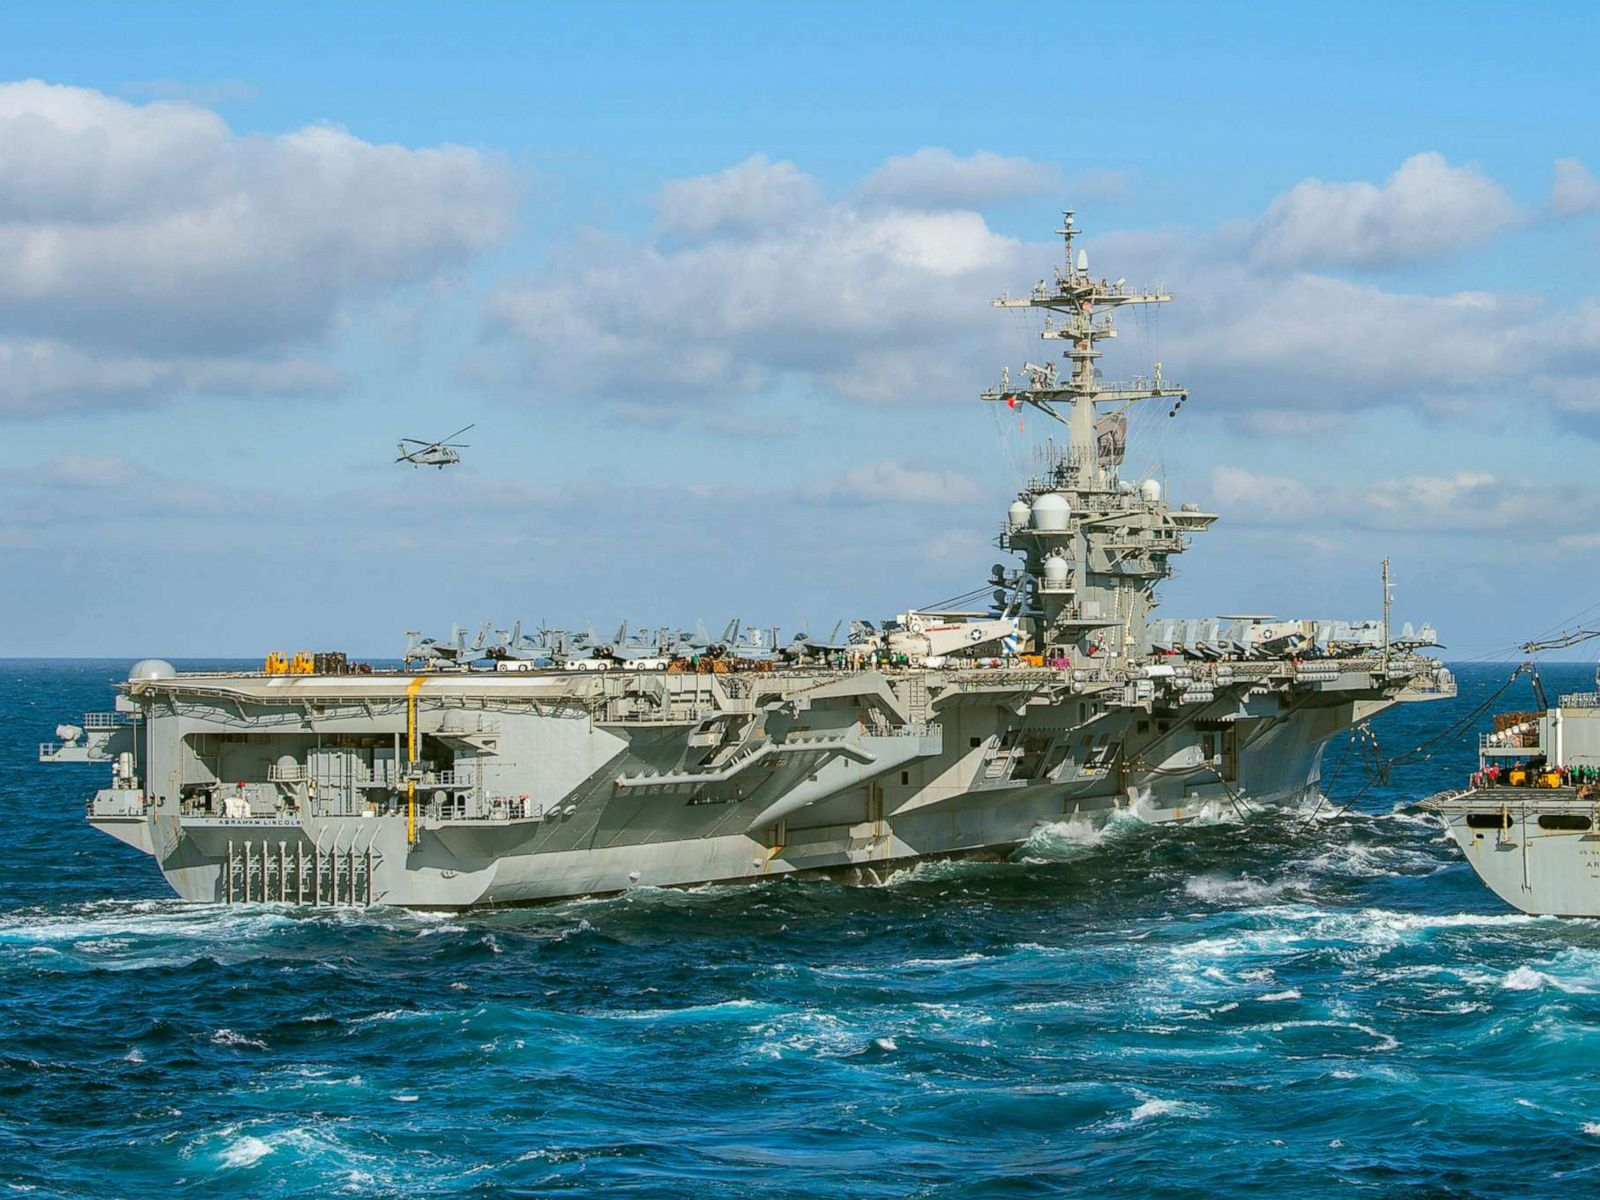 Aircraft carrier sent to Middle East after indications Iran ...